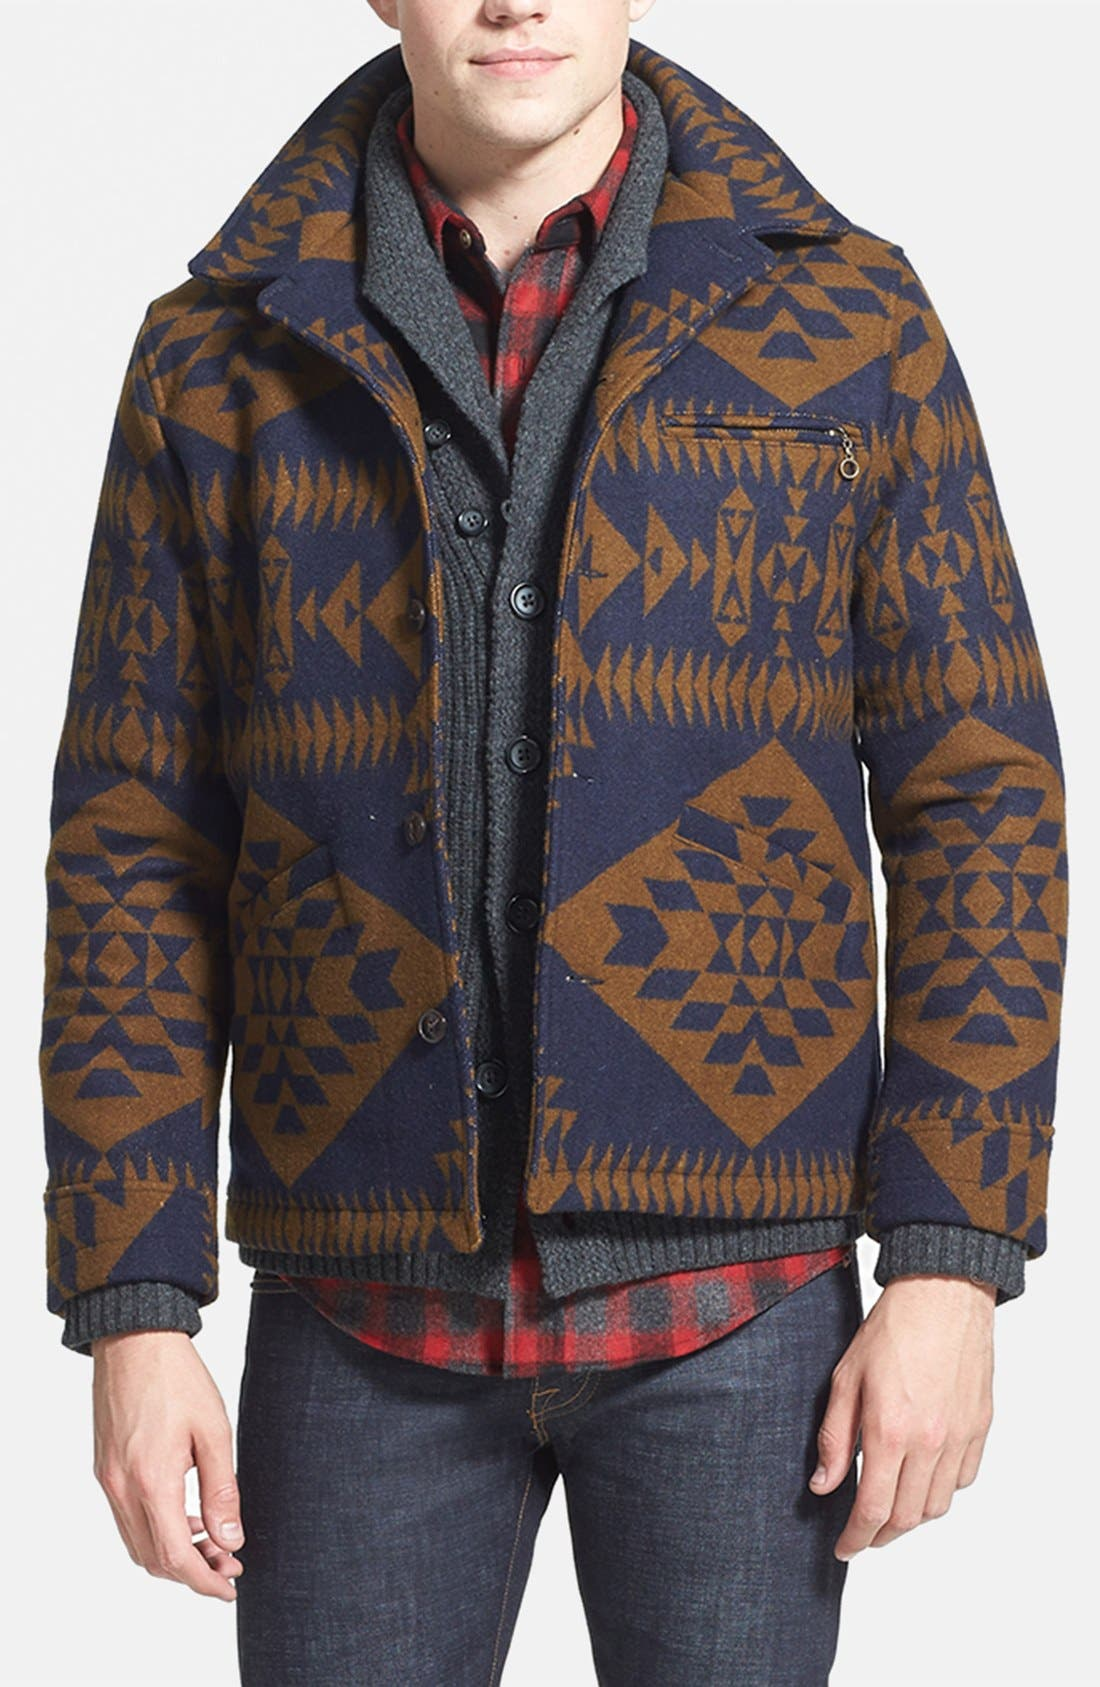 Main Image - Pendleton Jacket, 7 Diamonds Sweater, Pendleton Fitted Flannel Shirt & J Brand Skinny Fit Jeans